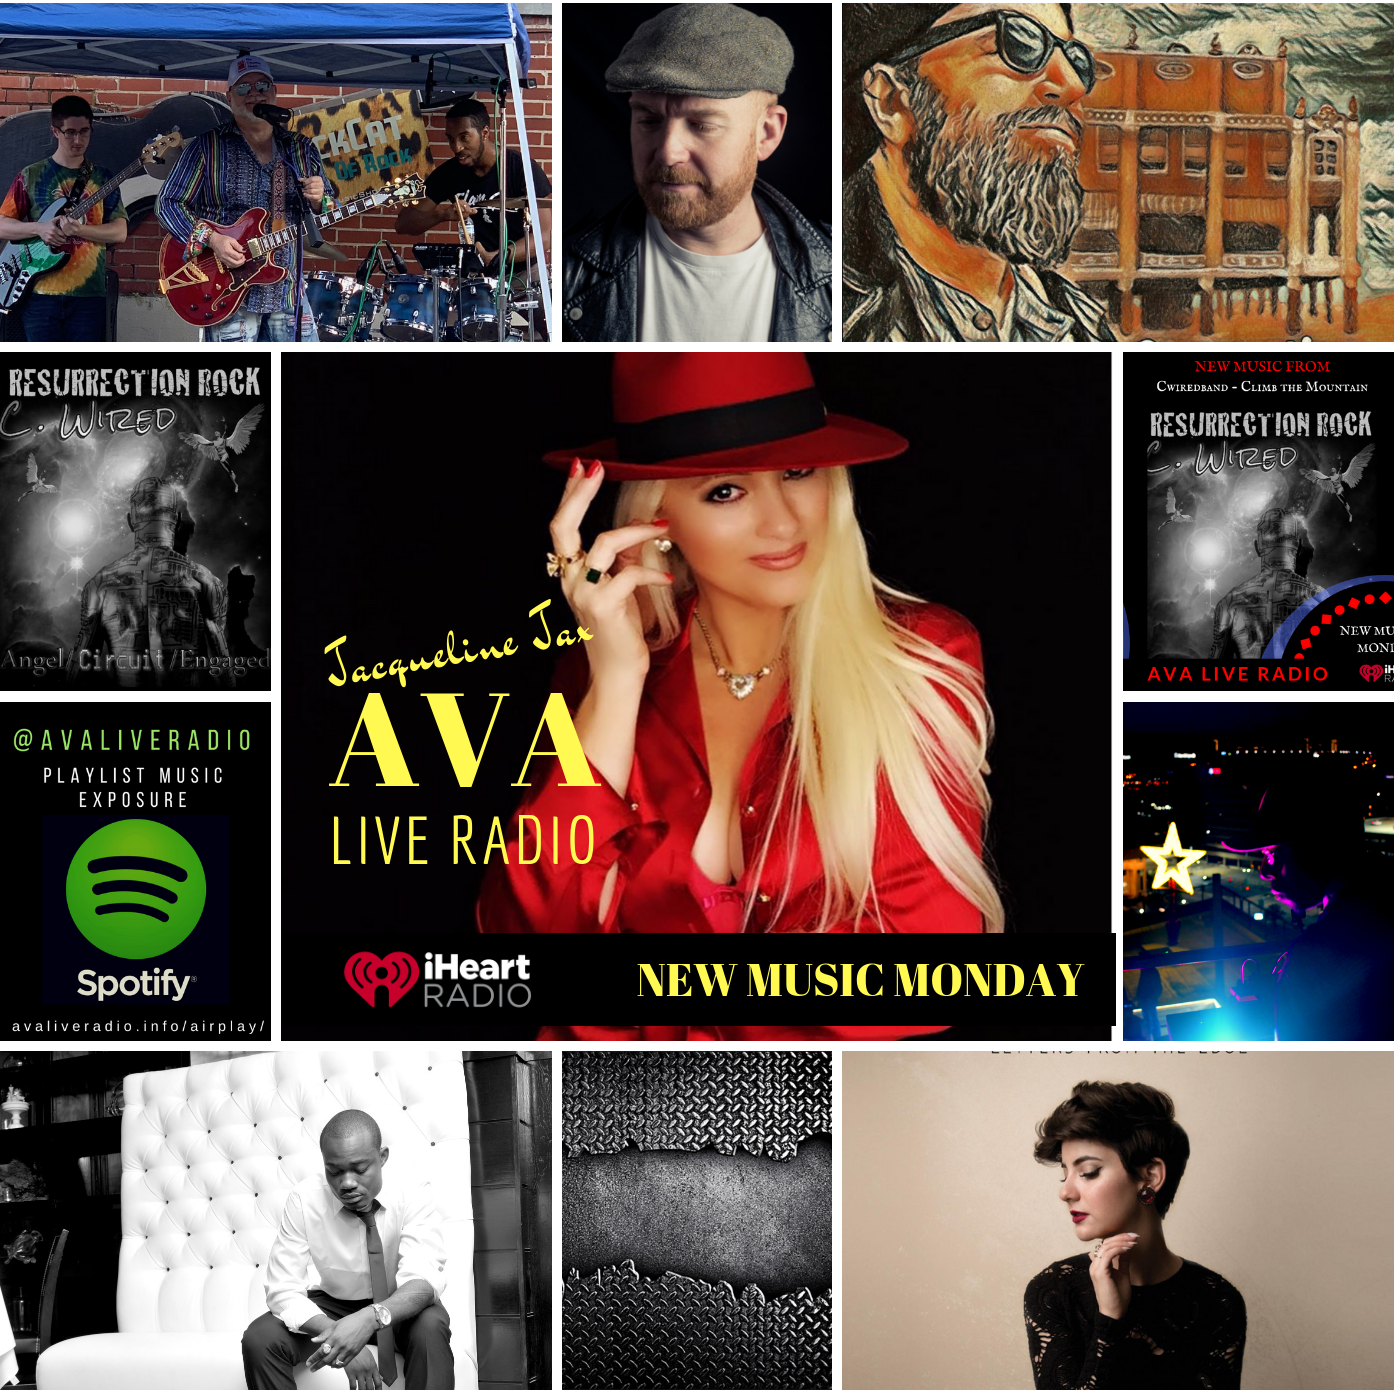 1 21 New Music Monday With Jacqueline Jax Today S List Of What S Fresh Coming Into A V A Live Radio This Is A Mix Of Indie Pop New Music Indie Pop Music